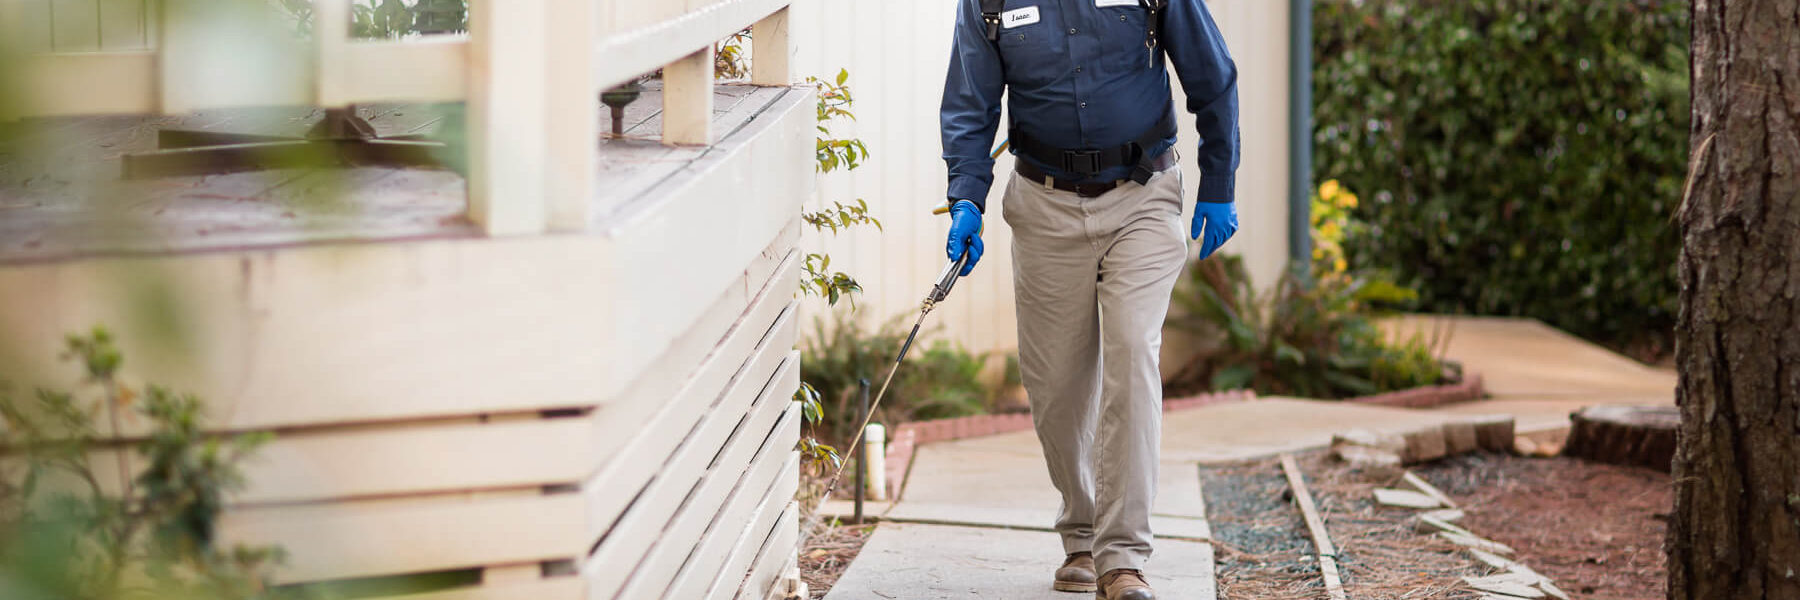 Know the Best Way of Delivering Pest Control Services Sydney